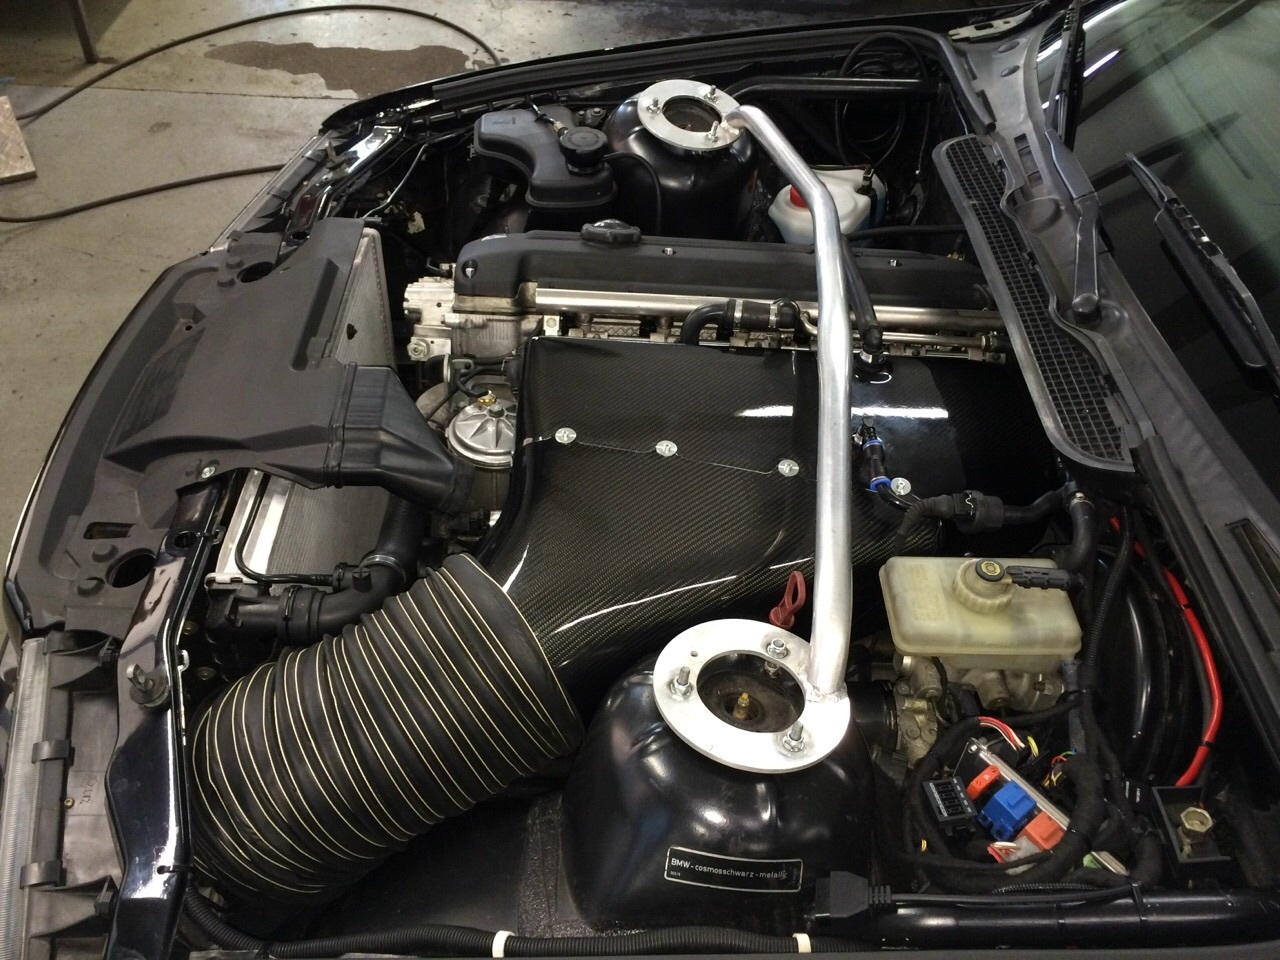 S54 Engine Swap E30 E36 Race And Trackday Parts For Bmw Cars